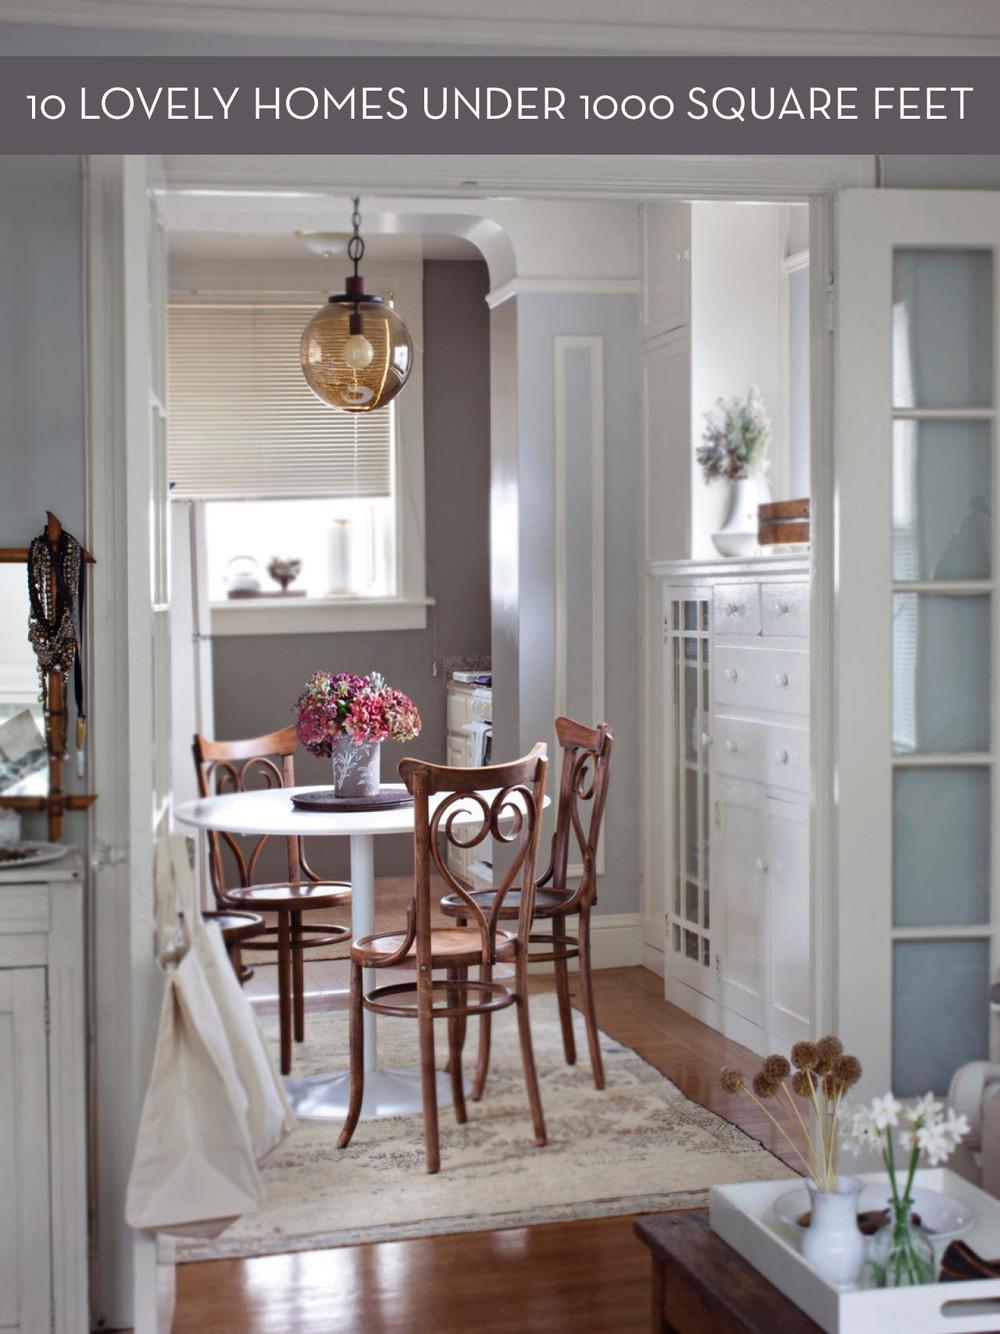 Gorgeous Small Home Under 1000 Square Feet